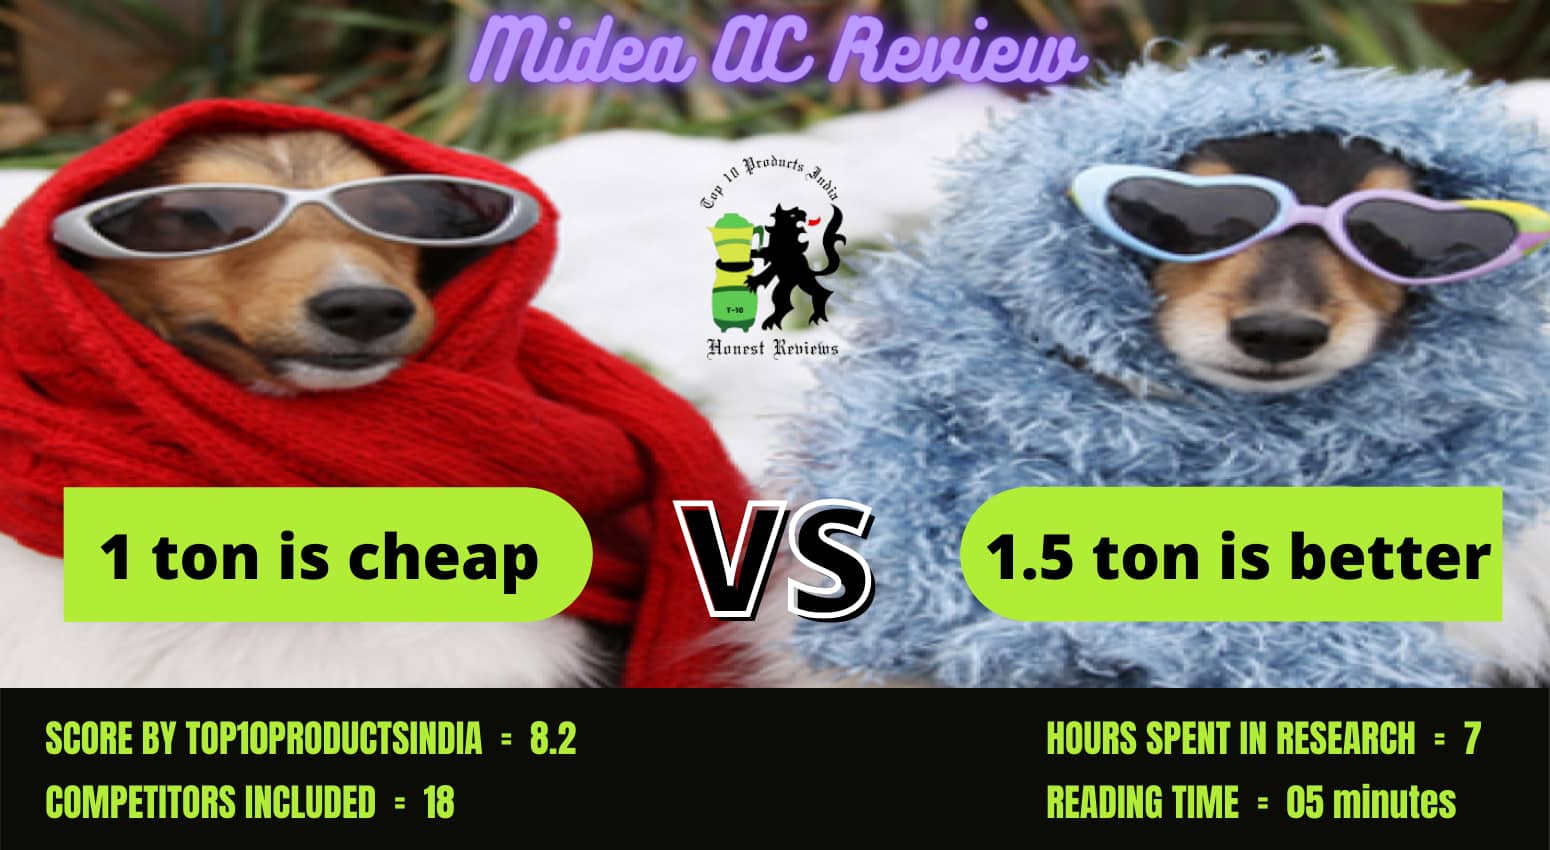 Midea AC Review – Which Model is Beneficial 1 or 1.5 Ton?